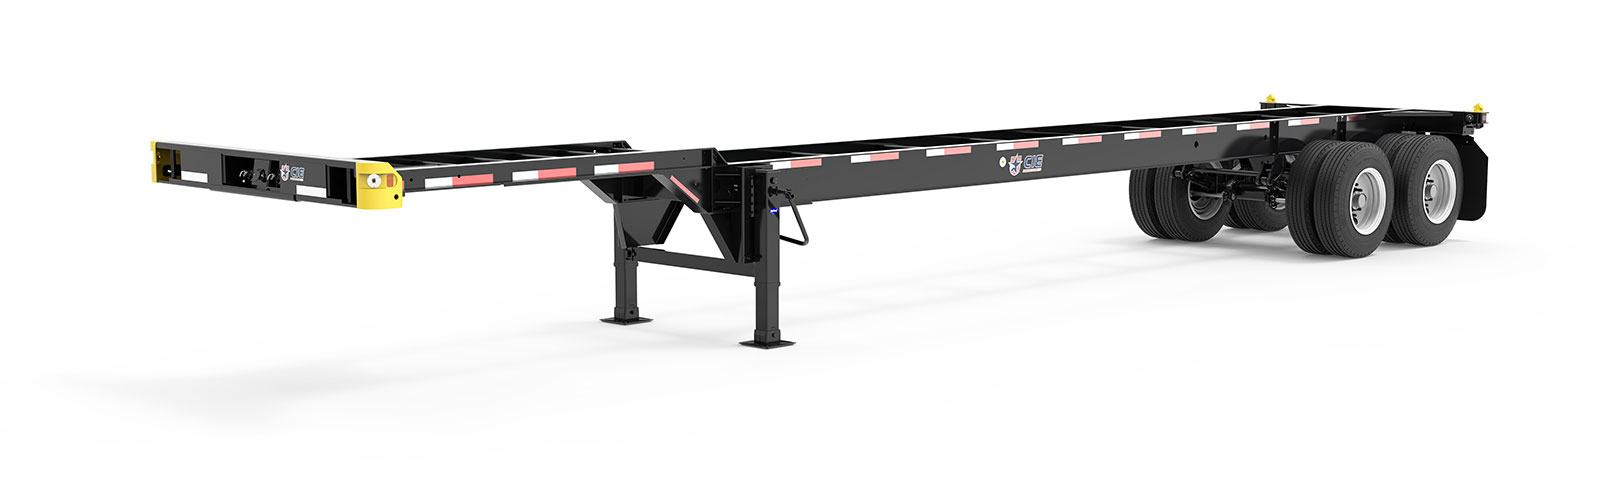 40' Gooseneck Tandem Container Chassis Literature Angle View Final